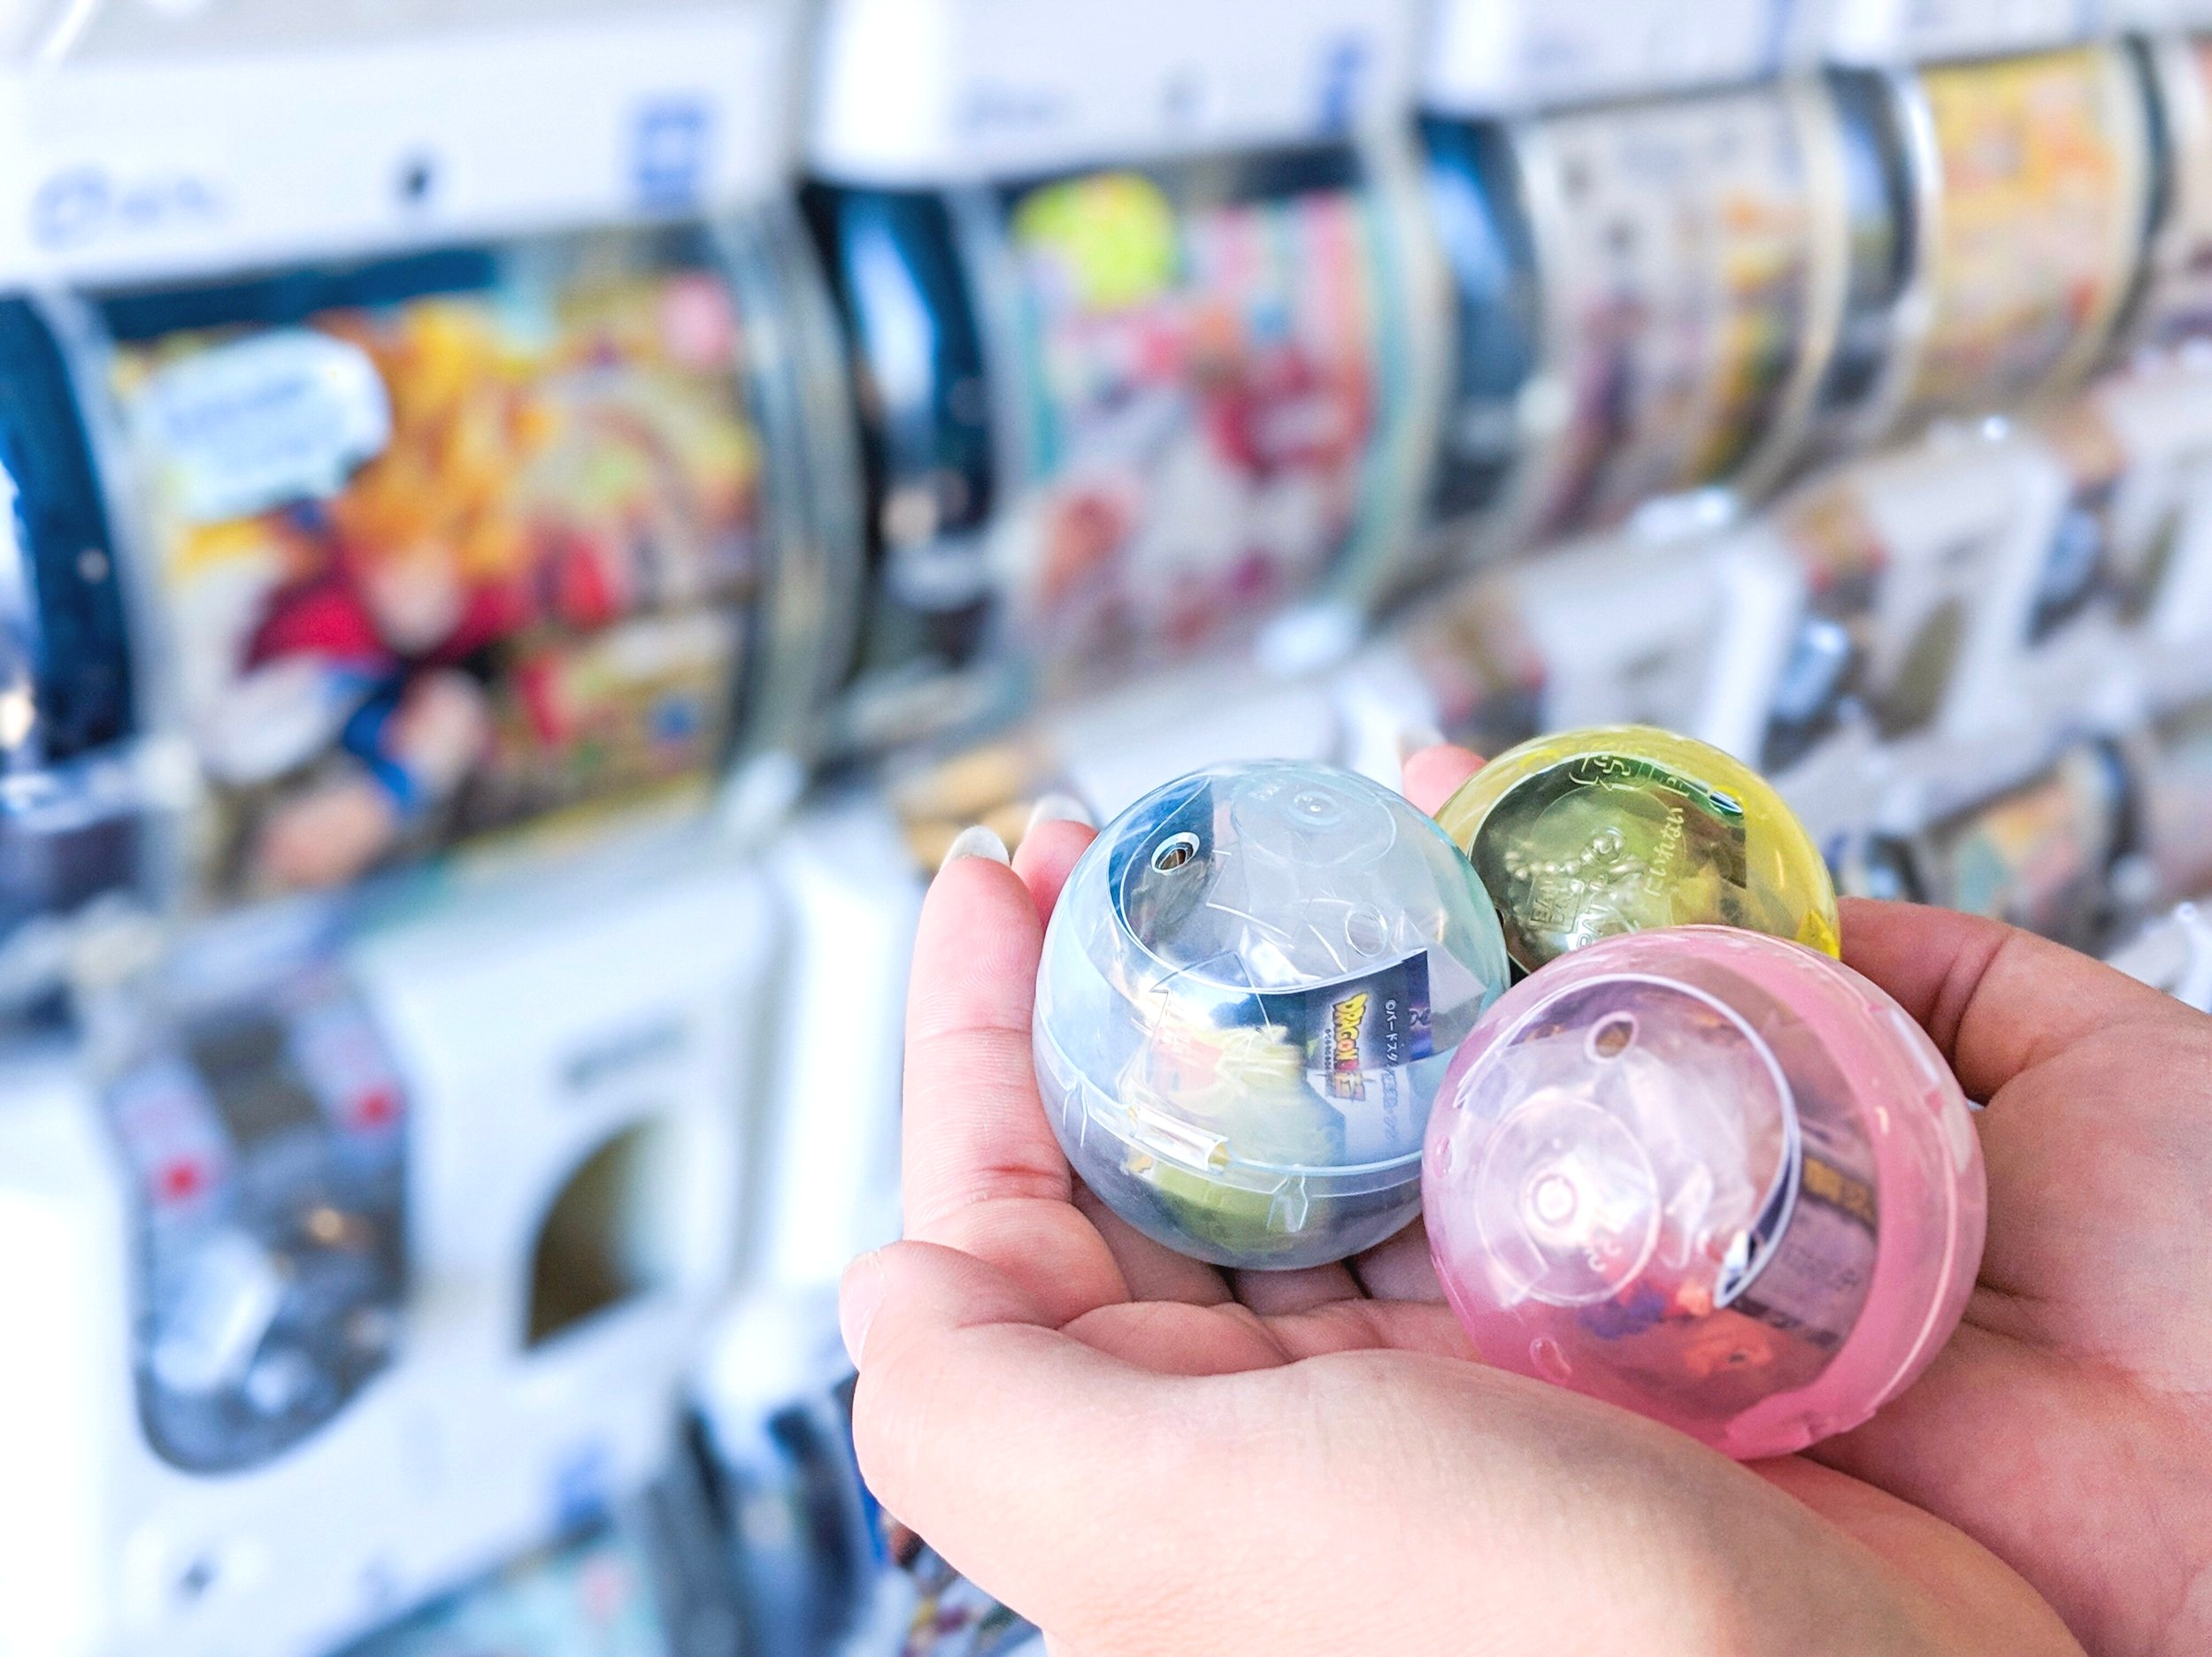 Gachaphon toys in capsules. Image from  @gacha.x2 .